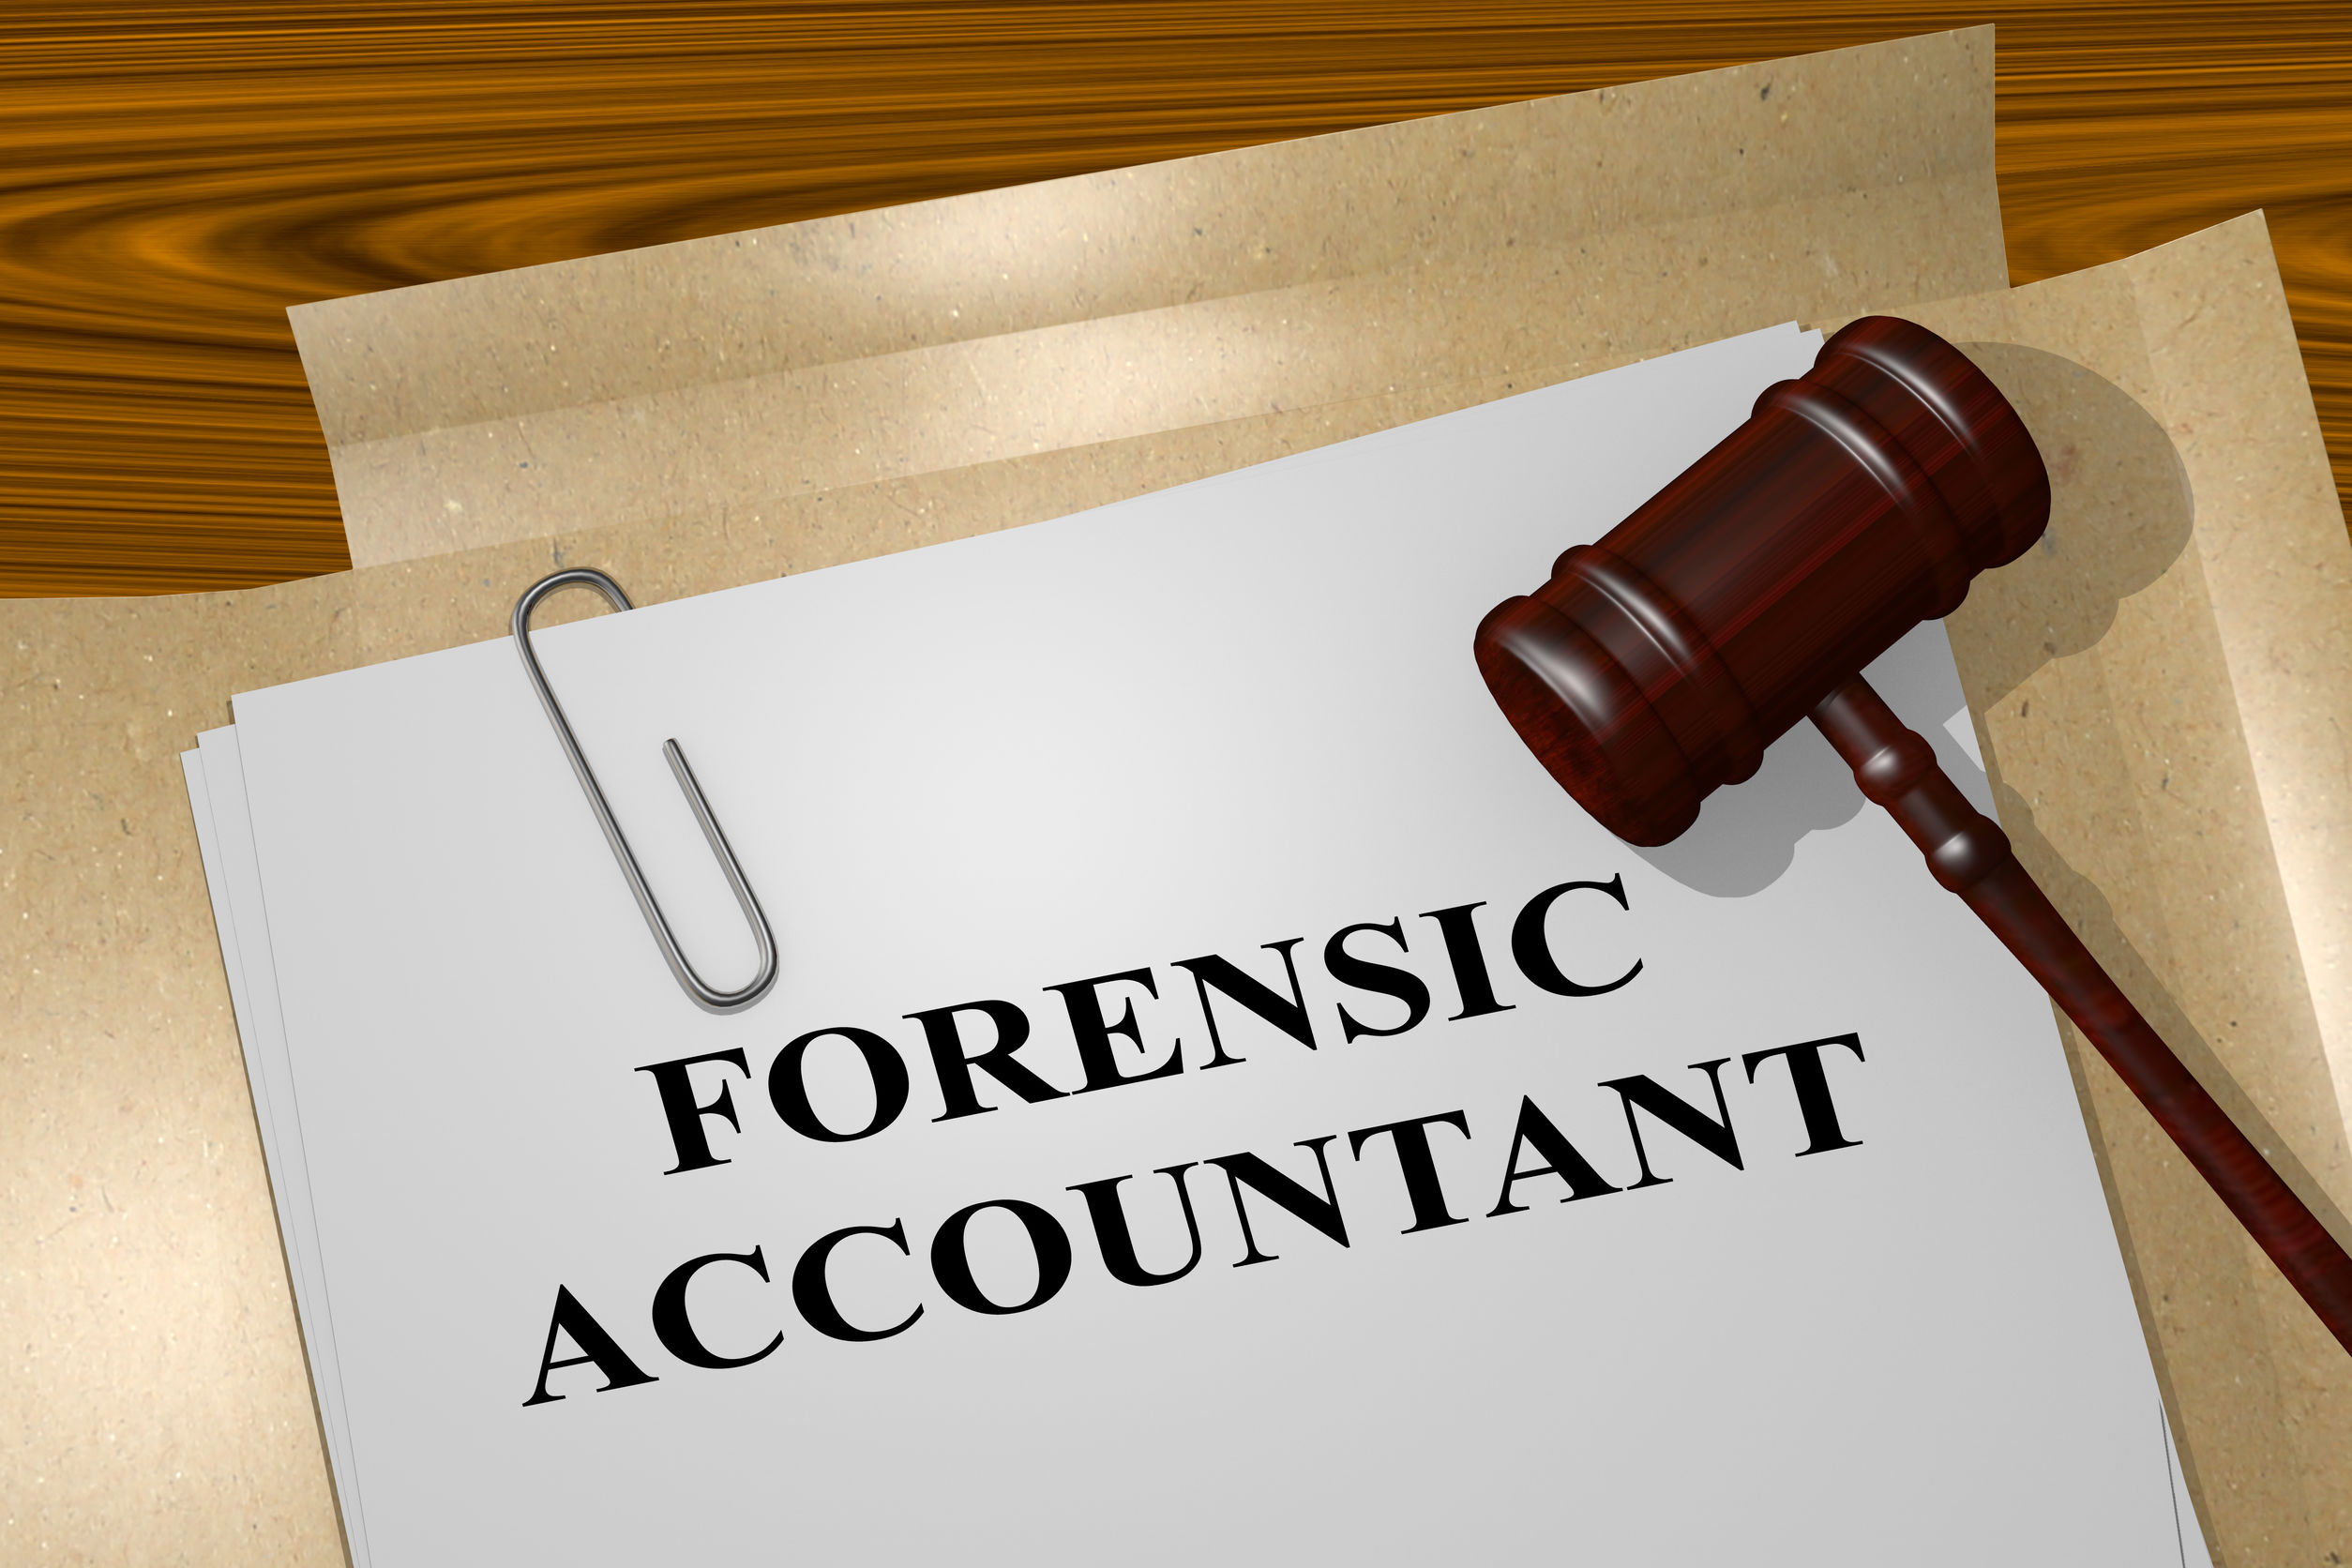 NH Schools in Top 25 for Forensic Accounting